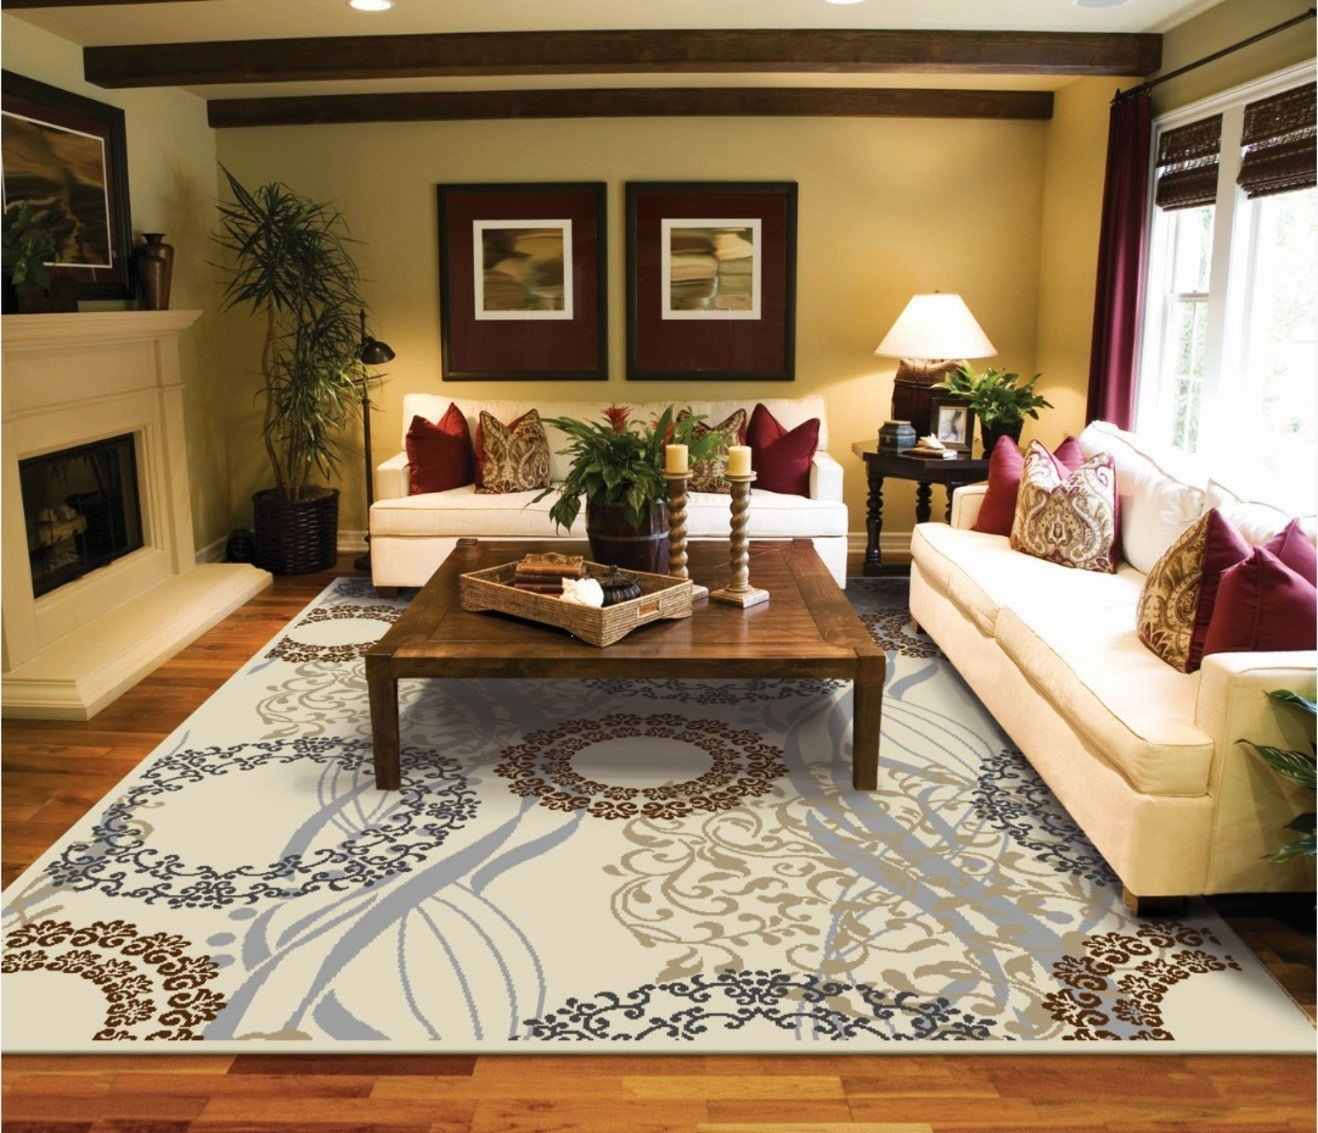 Merveilleux Area Rugs For Living Room 8x10 Under100 8x11 Area RugsCream Ctemporary Area  Rugs